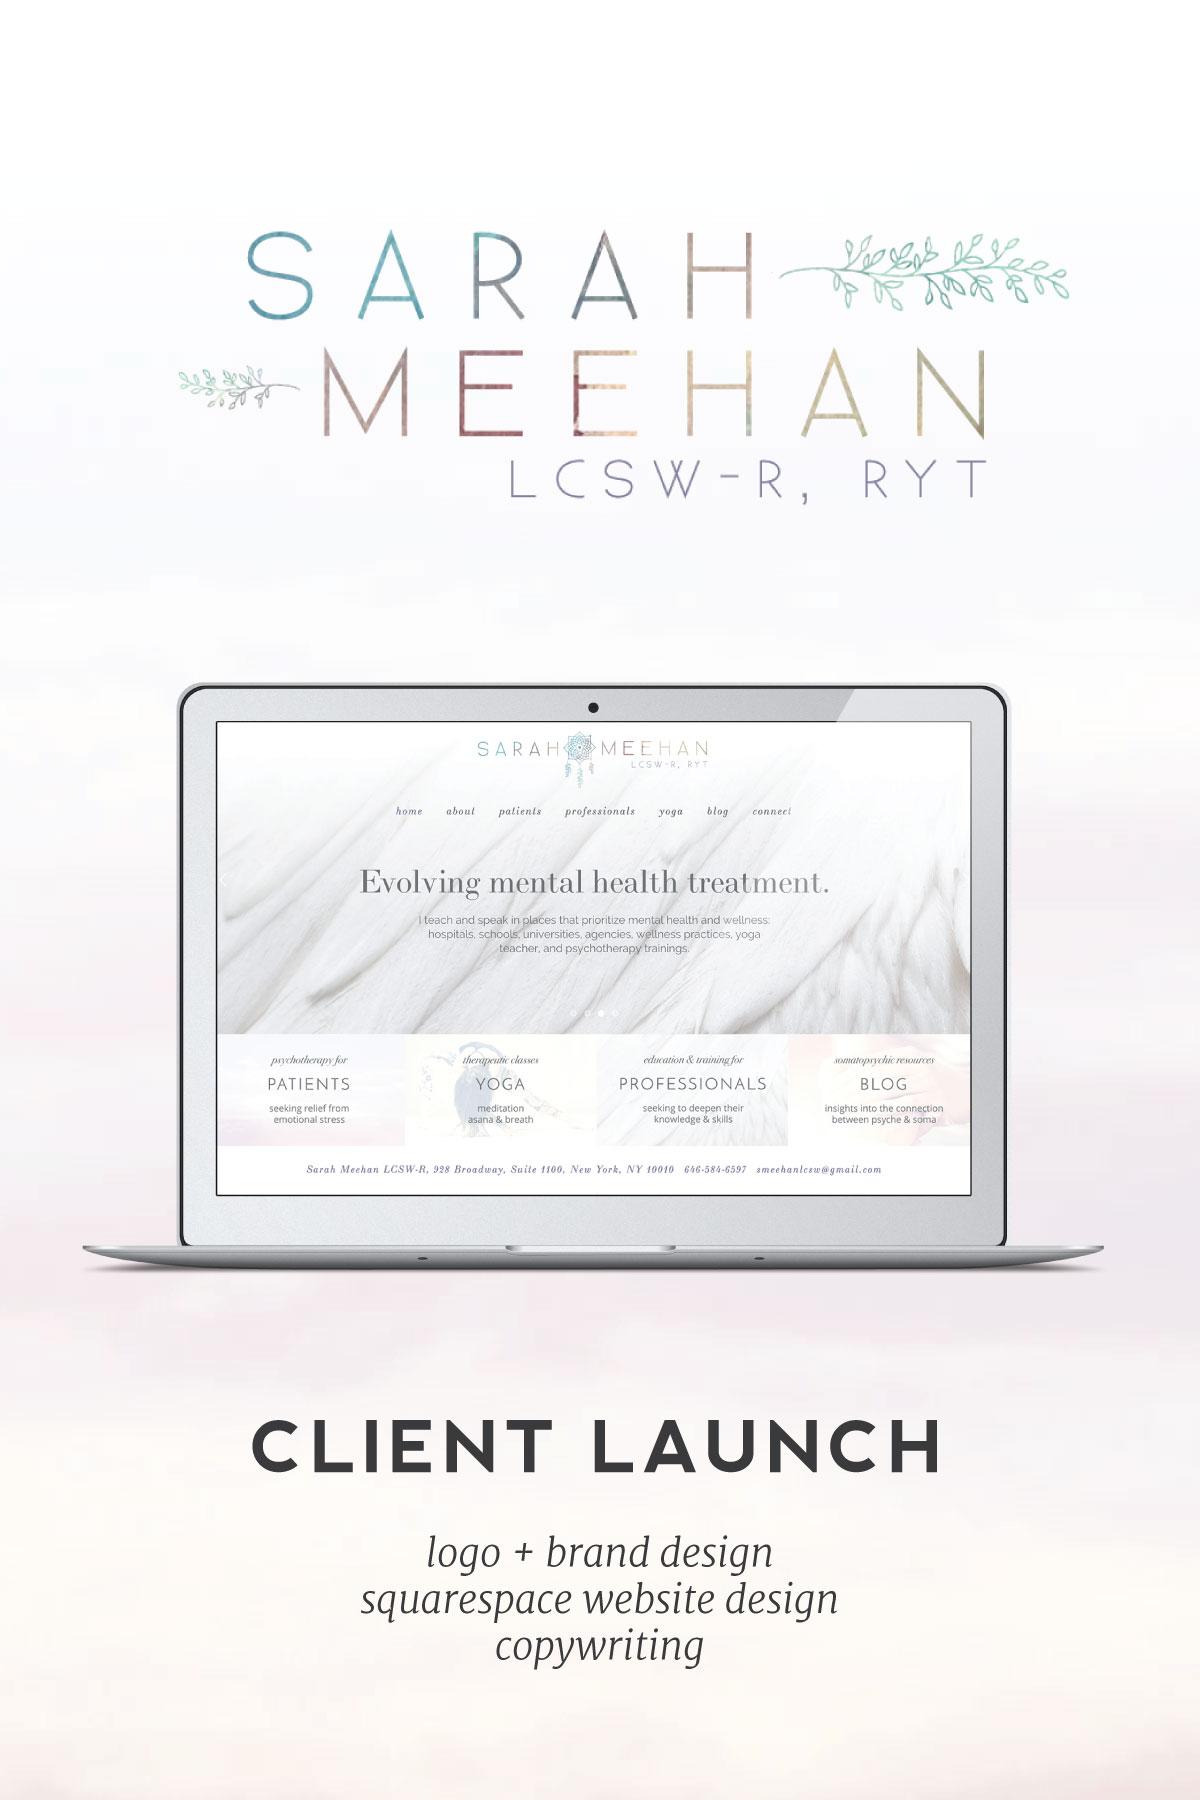 Join us as we celebrate the launch of our wonderful client, Sarah Meehan LCSW-R. We helped Sarah transition out of her DIY Squarespace website into a beautiful new Squarespace design that better fits her successful psychotherapy business.